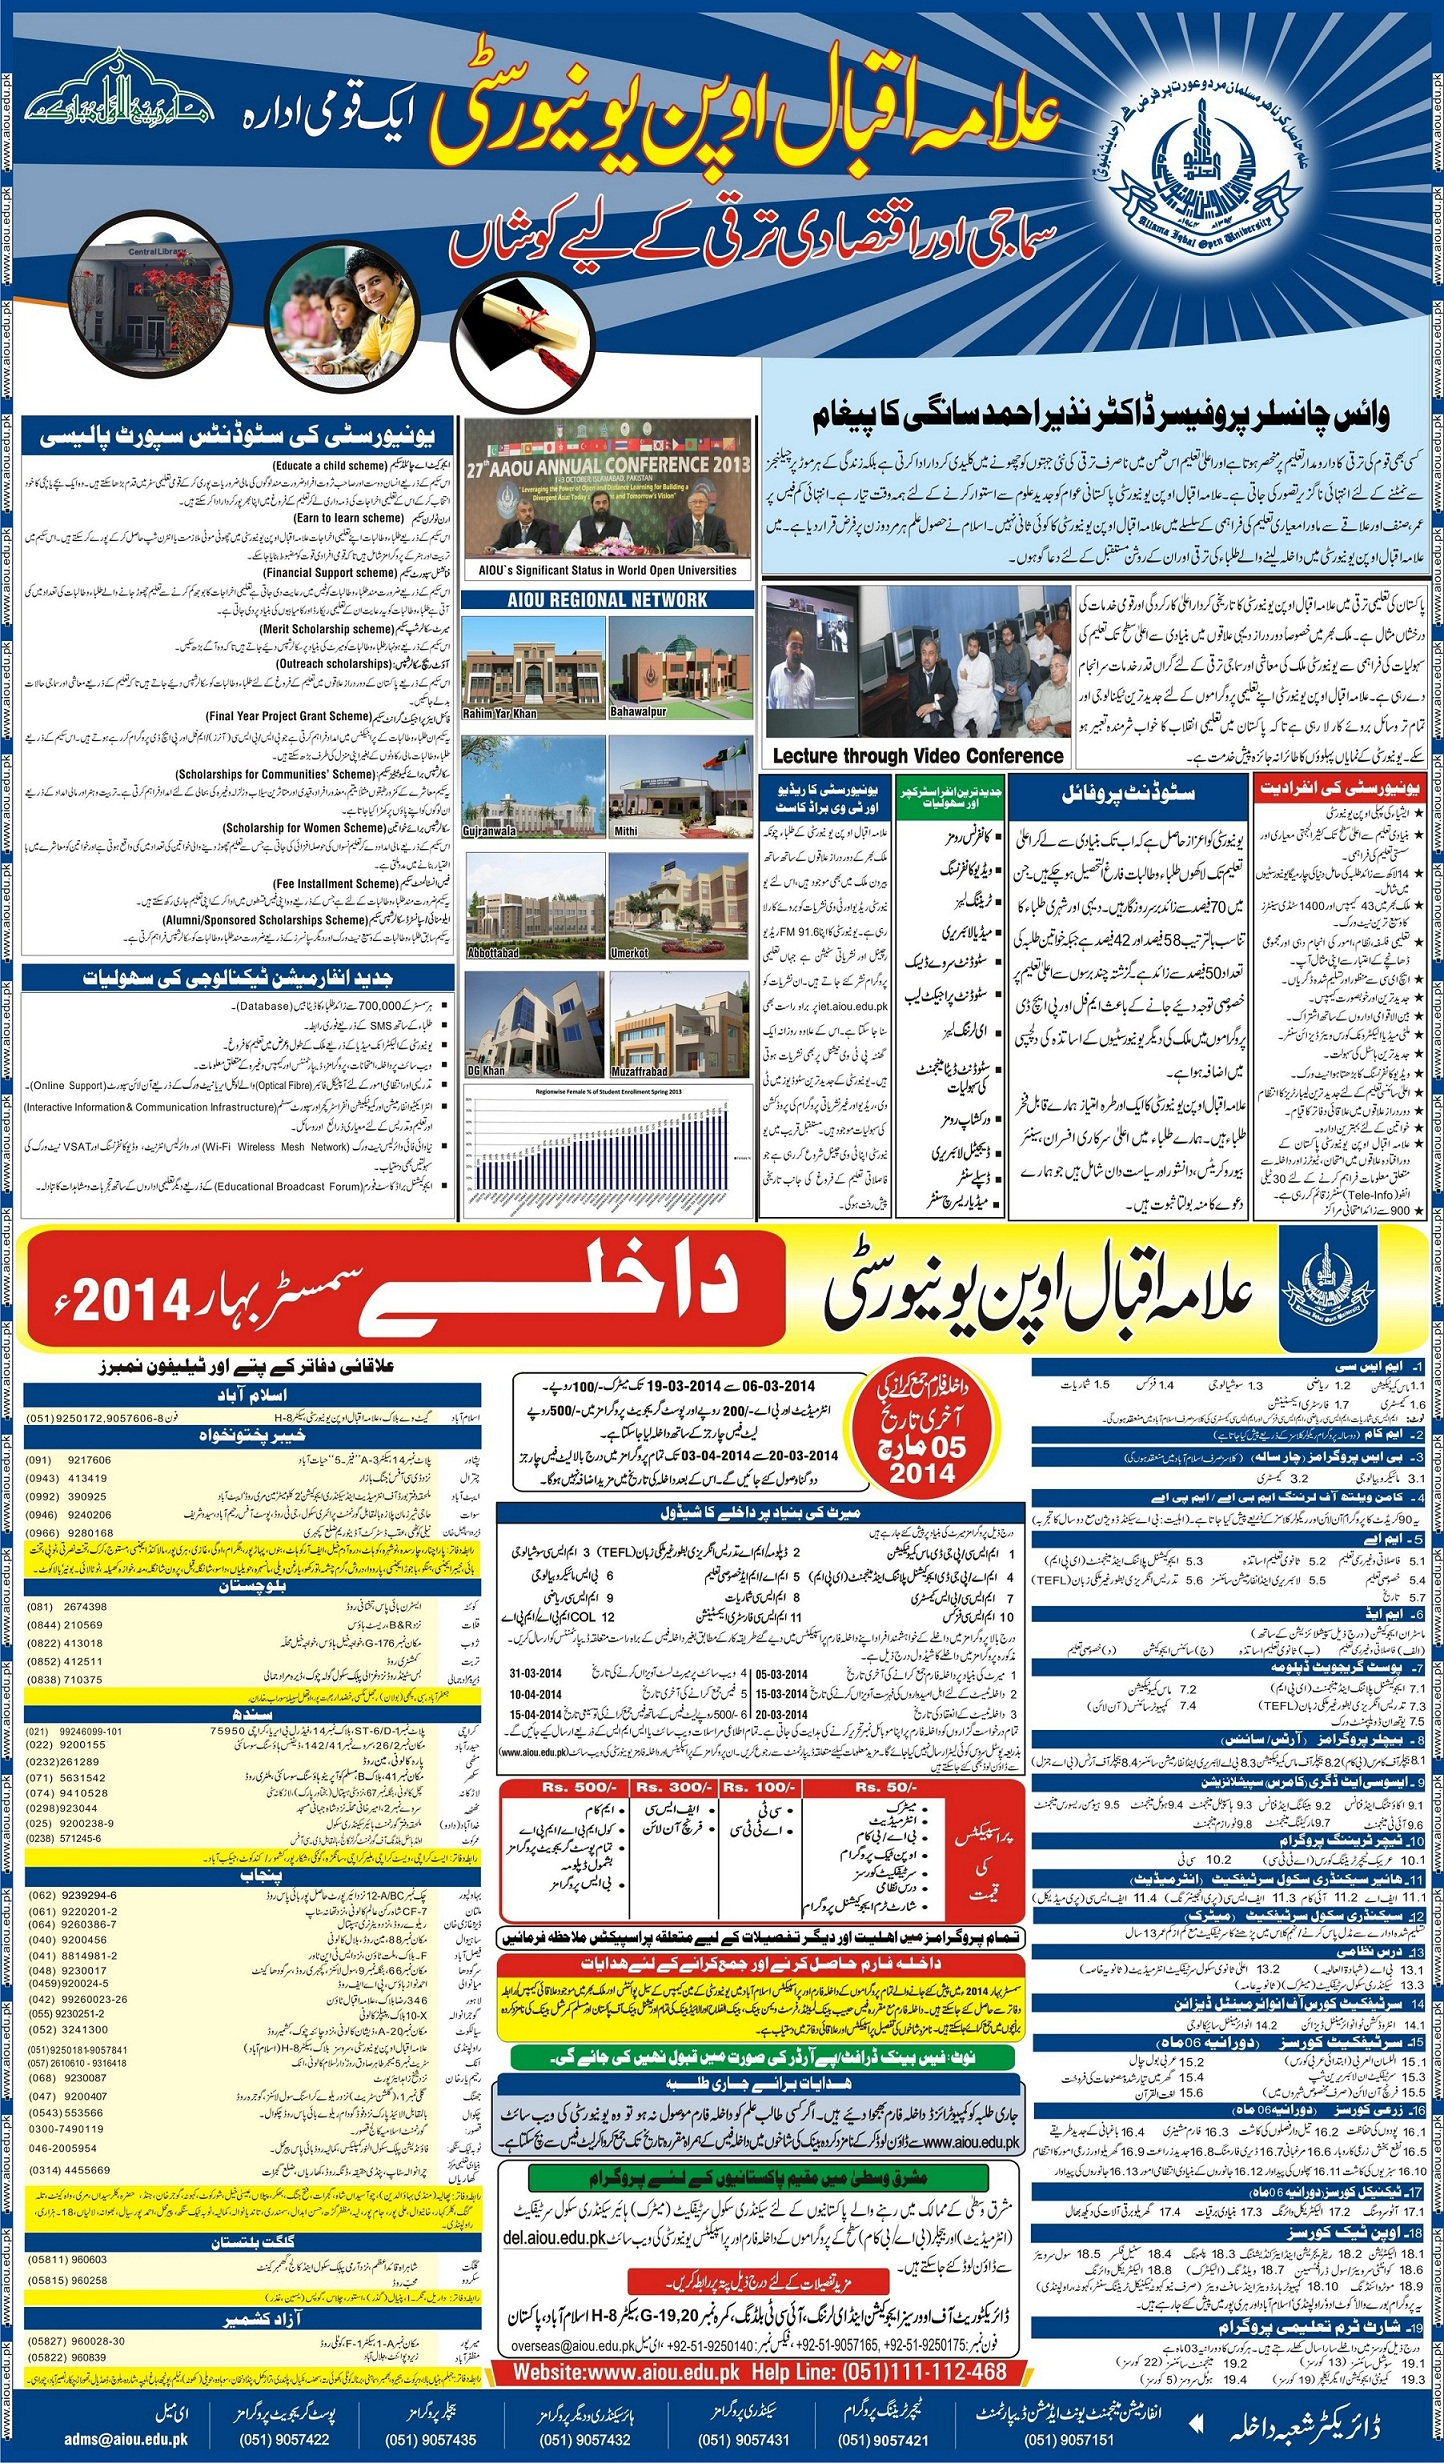 Allama iqbal Open University AIOU Spring admission 2014 Form Online